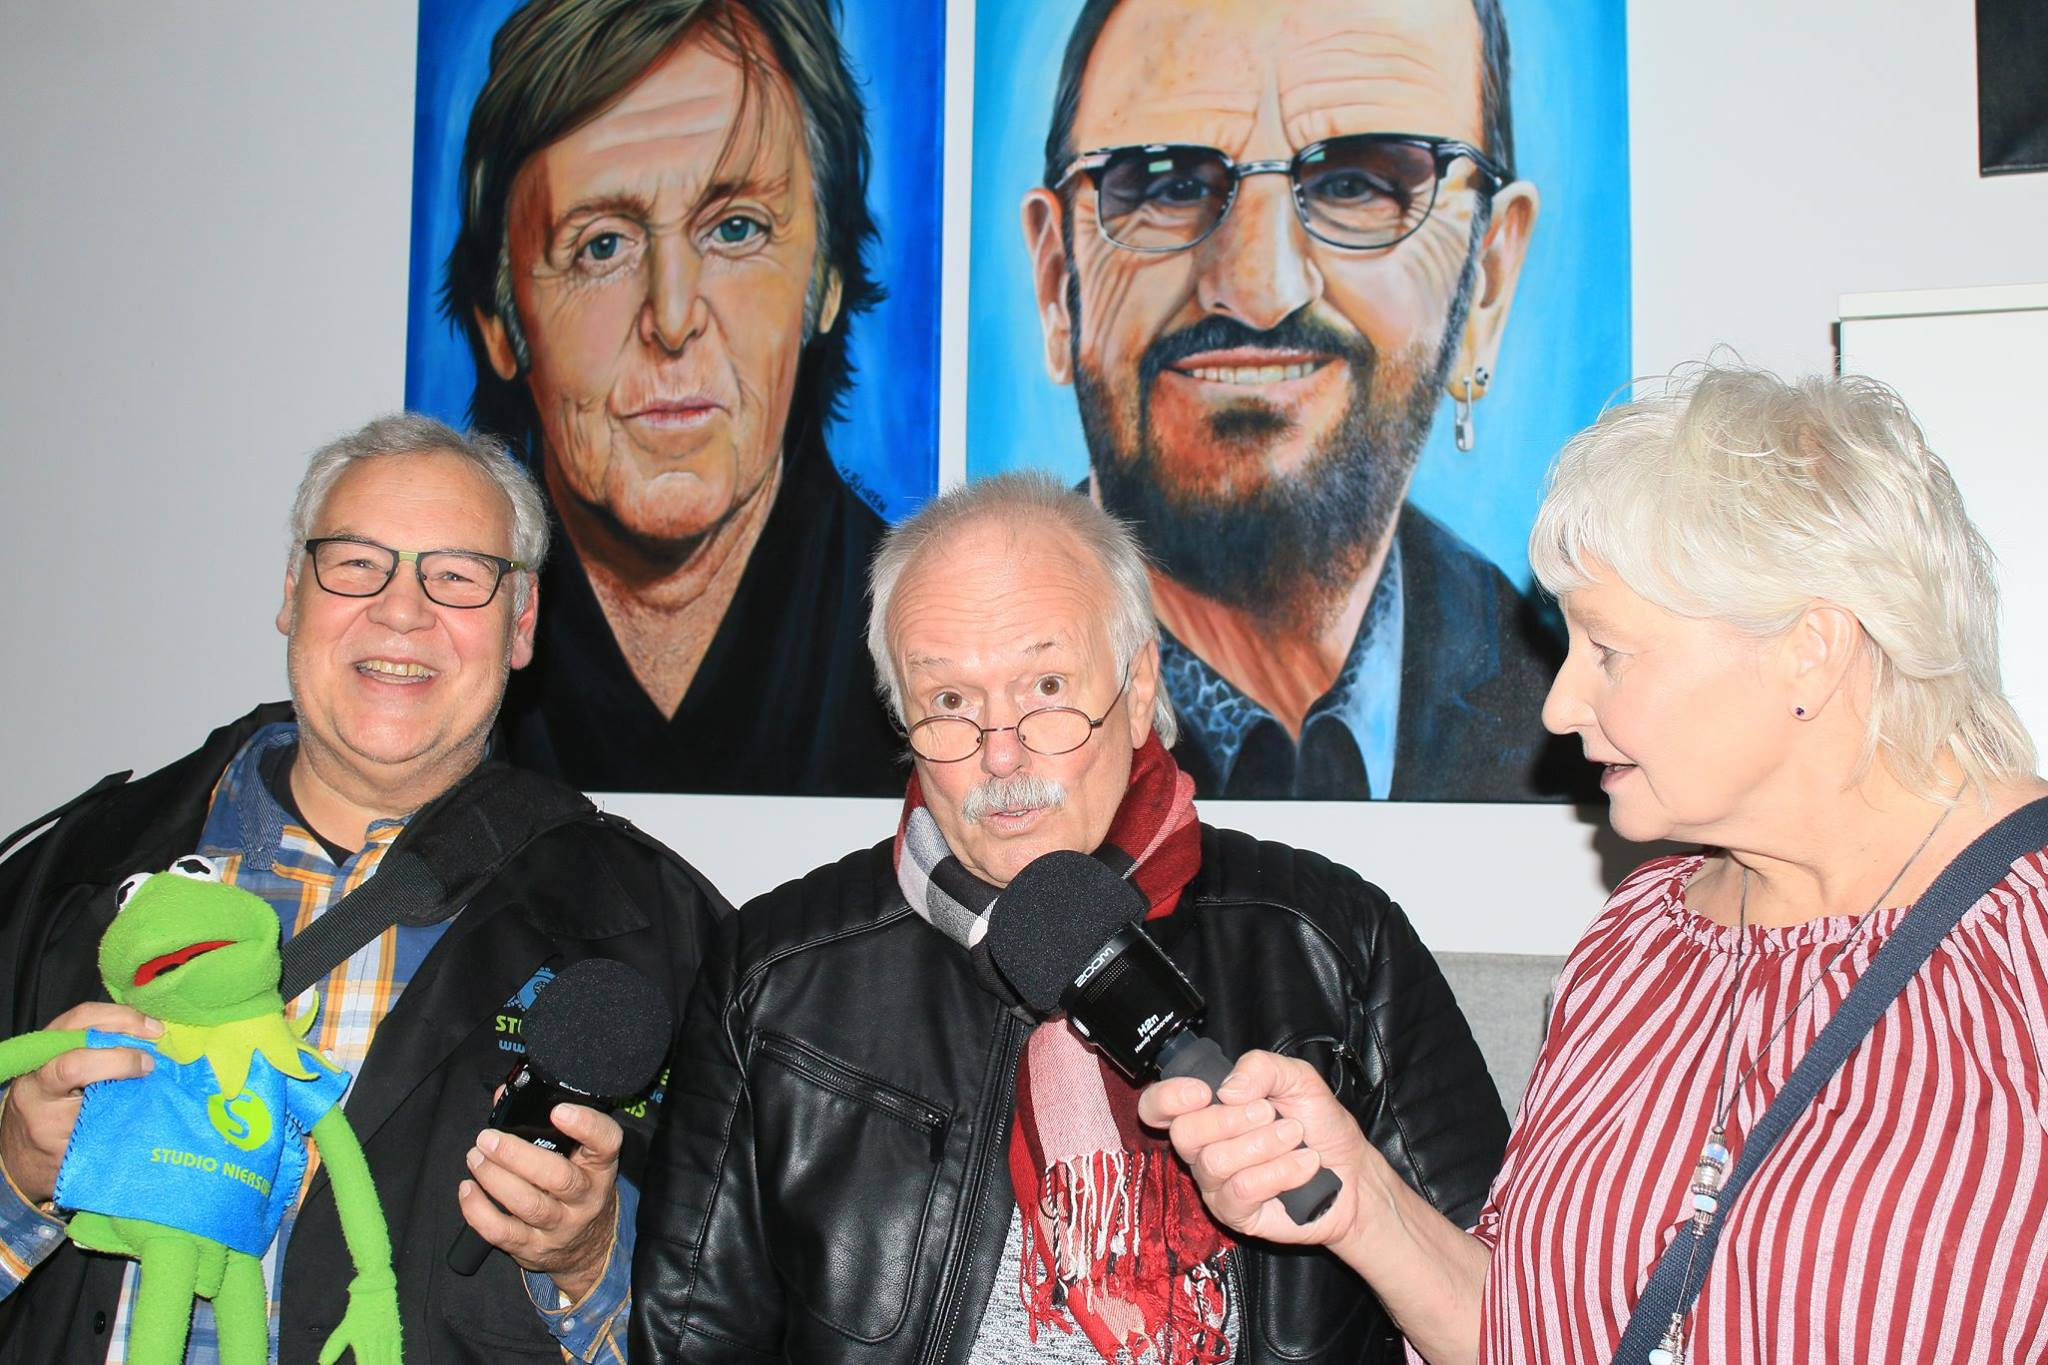 Interview mit Radio Nierswelle